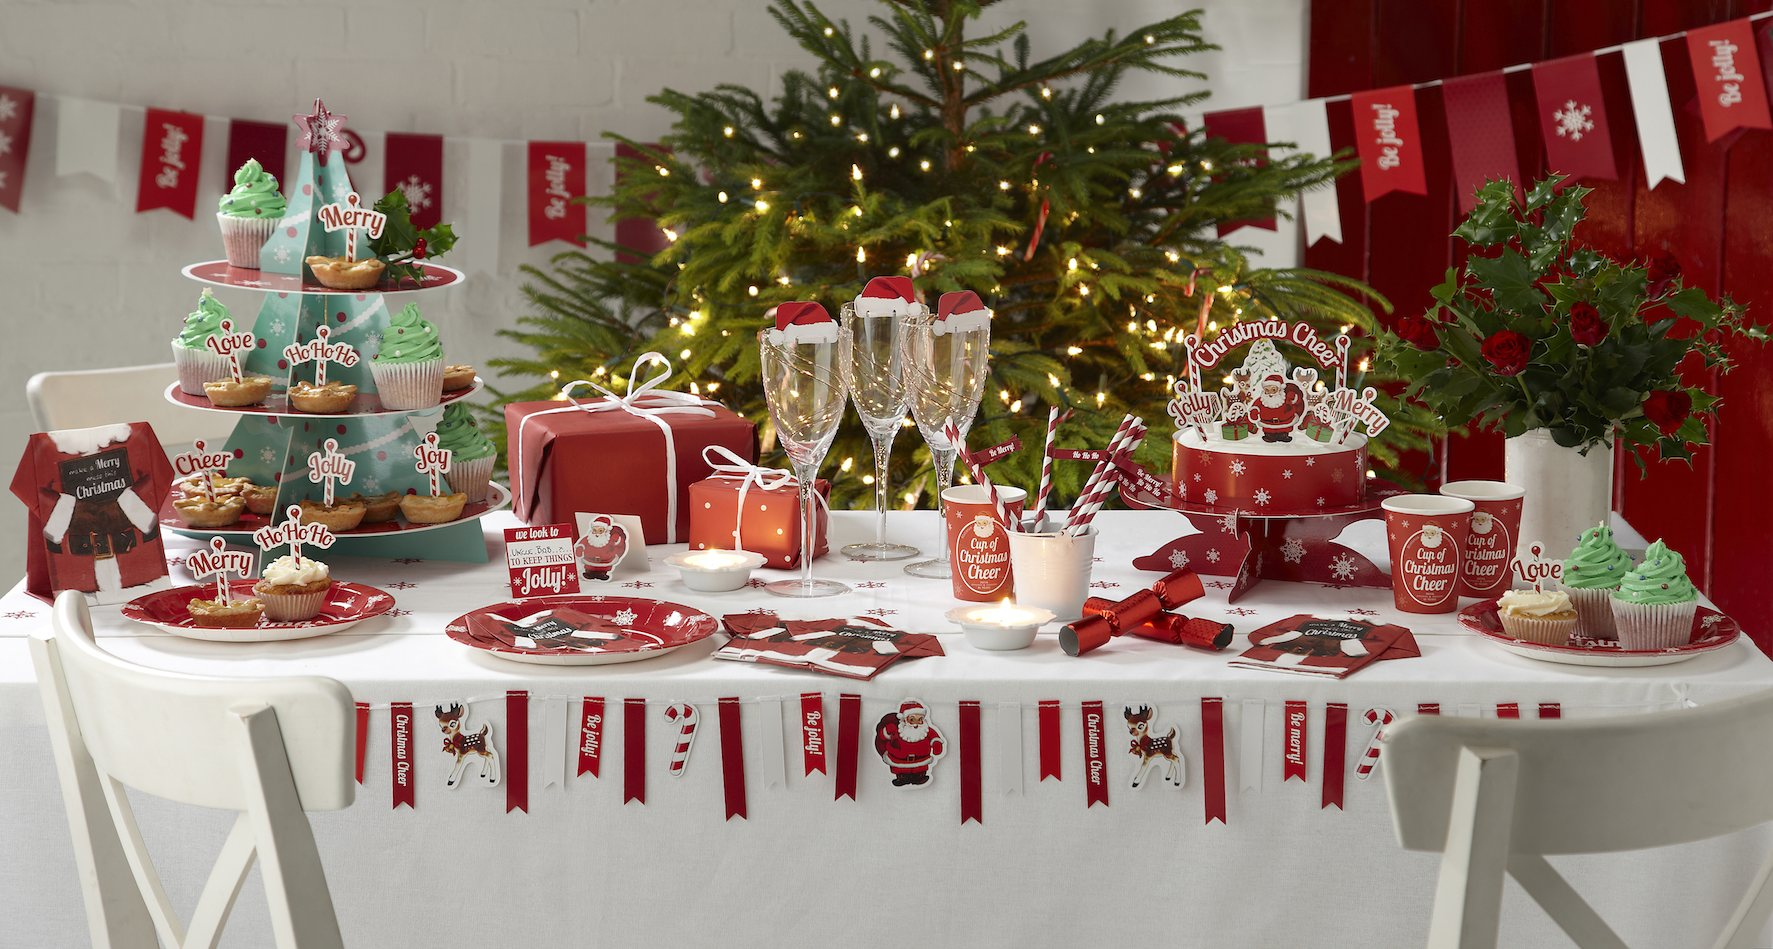 decoration-table-noel-rouge-blanc